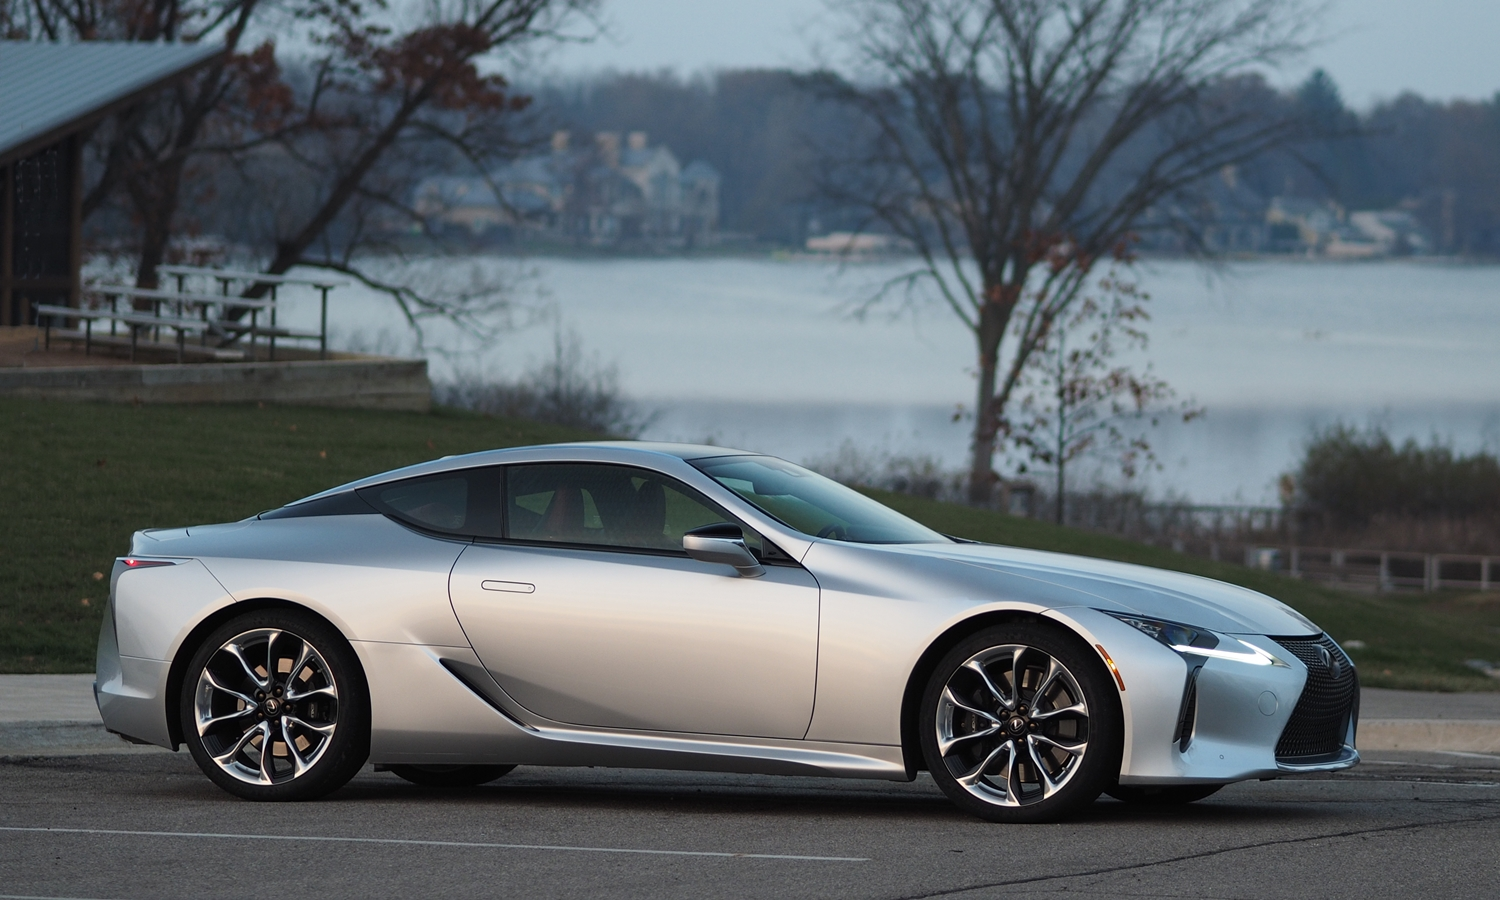 Lexus LC Photos: Lexus LC 500 side view slight forward angle